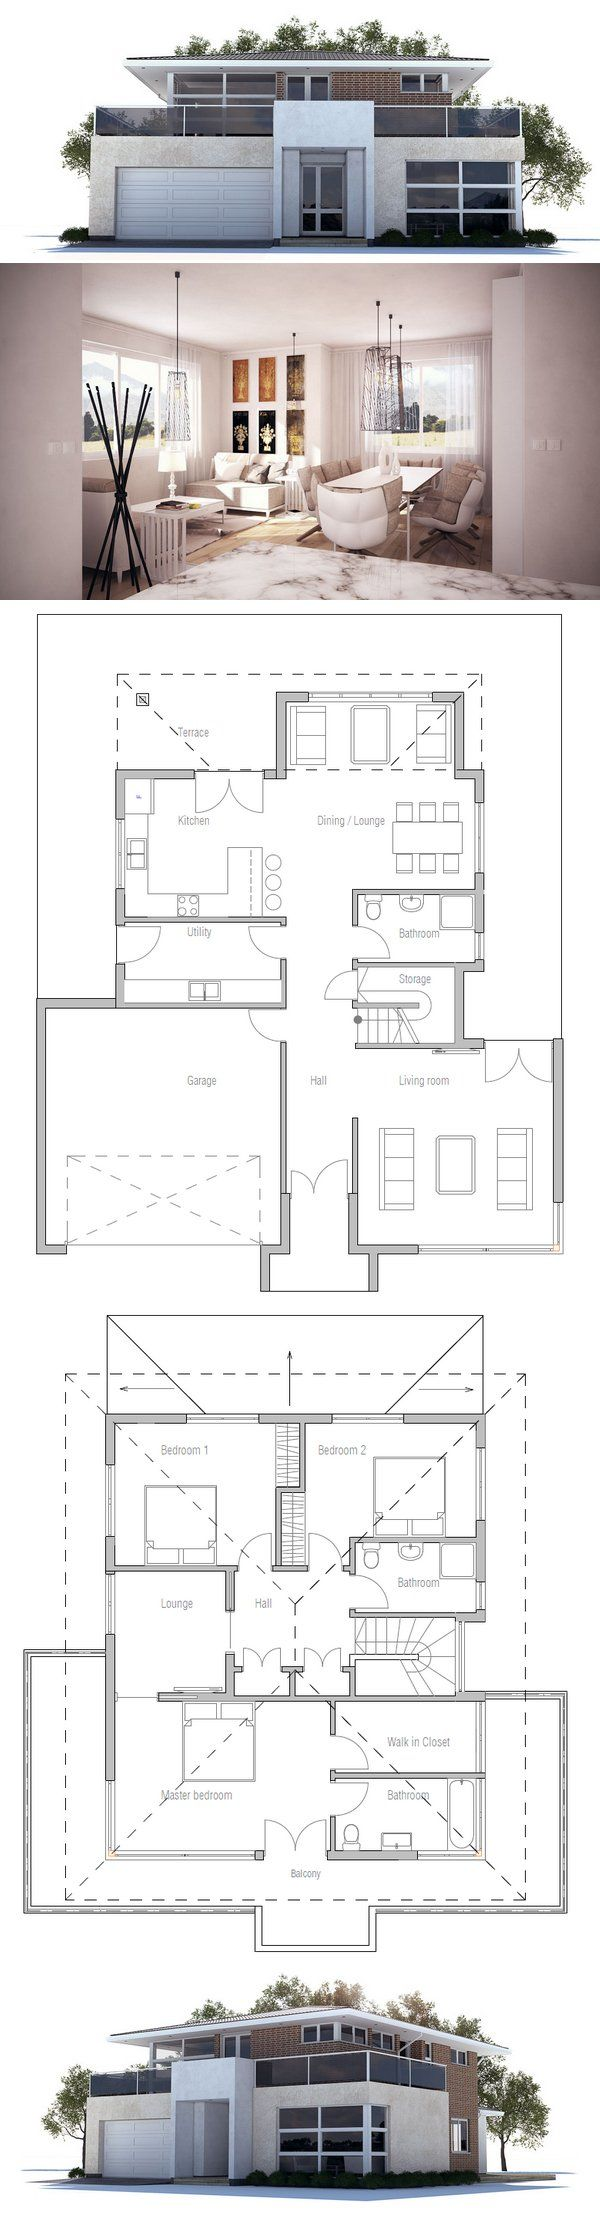 Modern House Plan with three bedrooms, two living areas, double garage. Floor Plan from ConceptHome.com. Modern Architecture